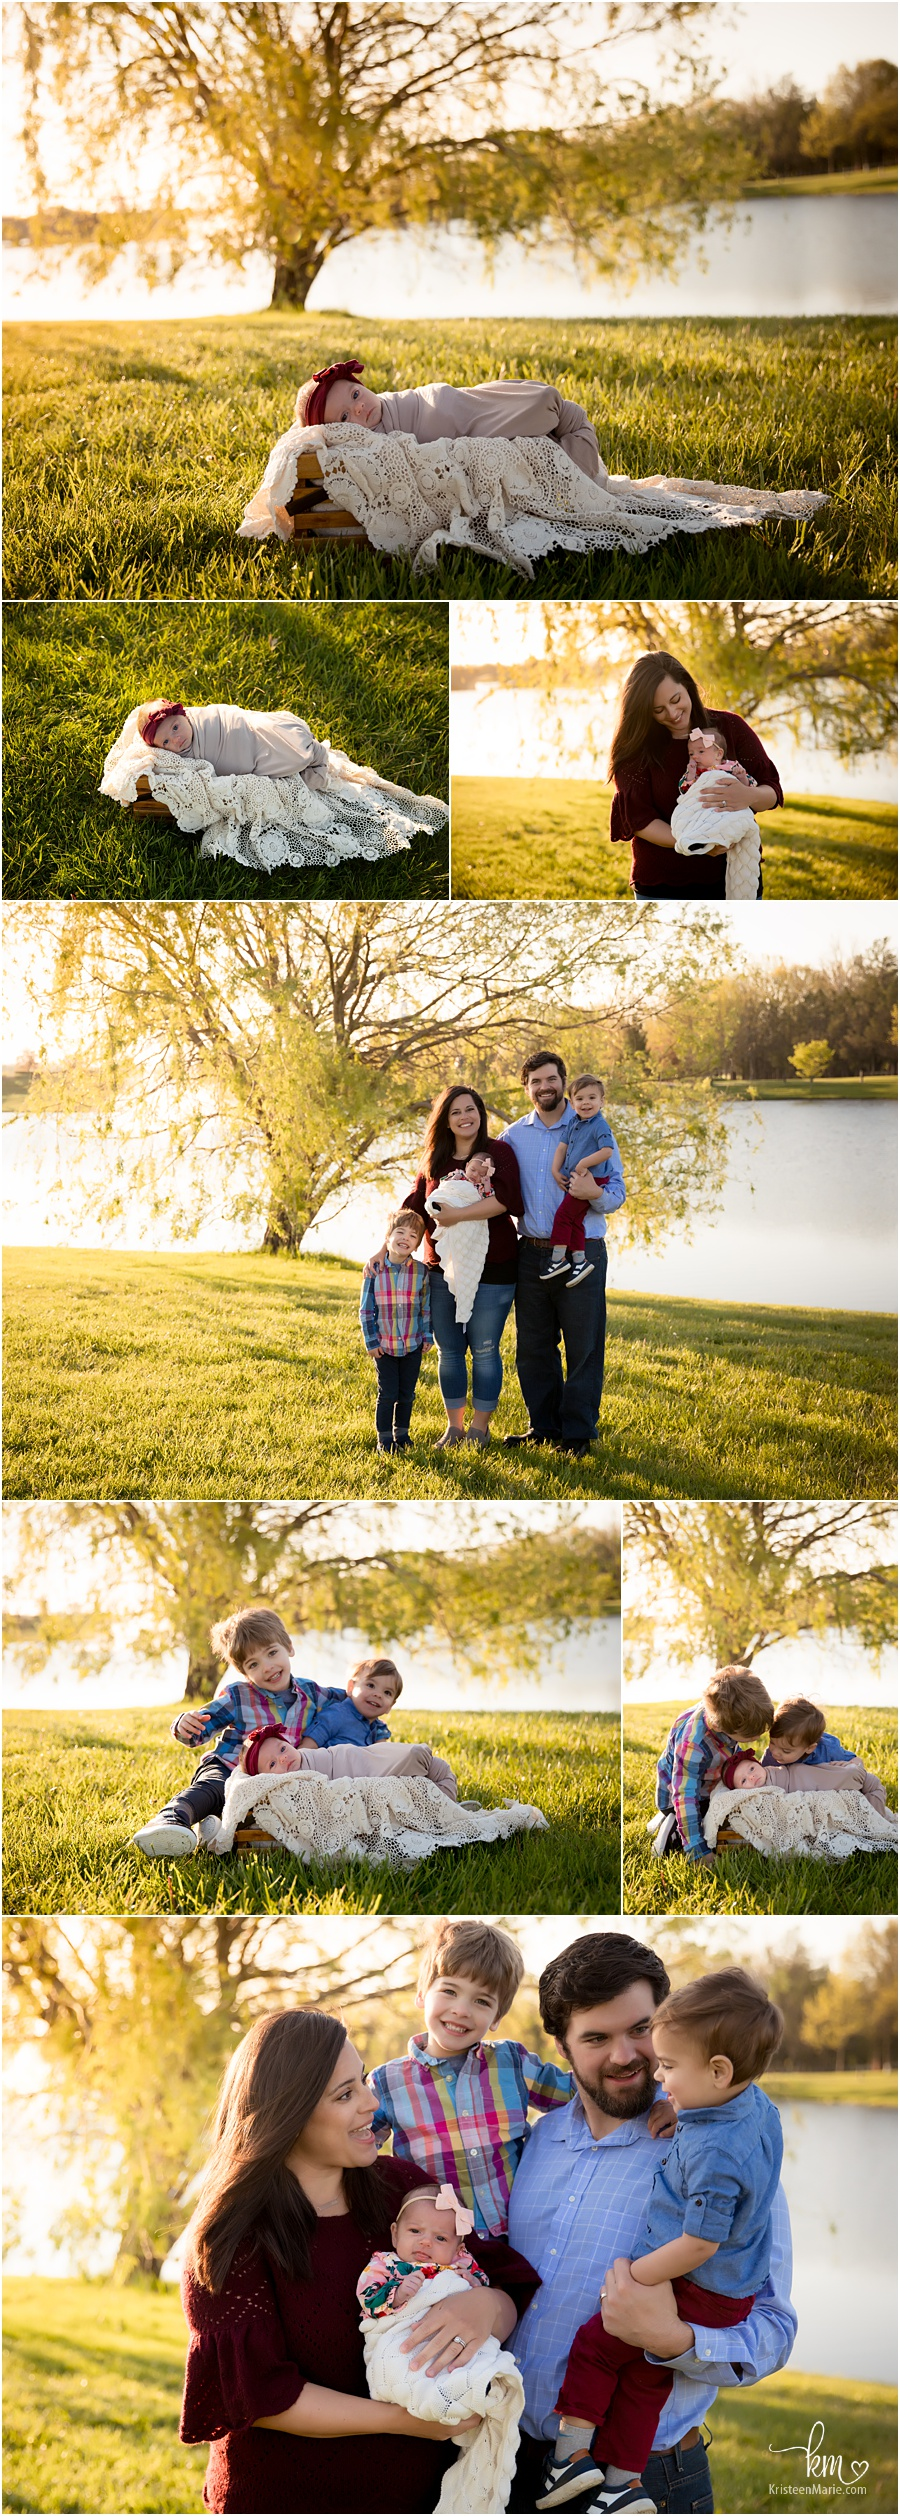 Outdoor newborn photography - Indianapolis photographer